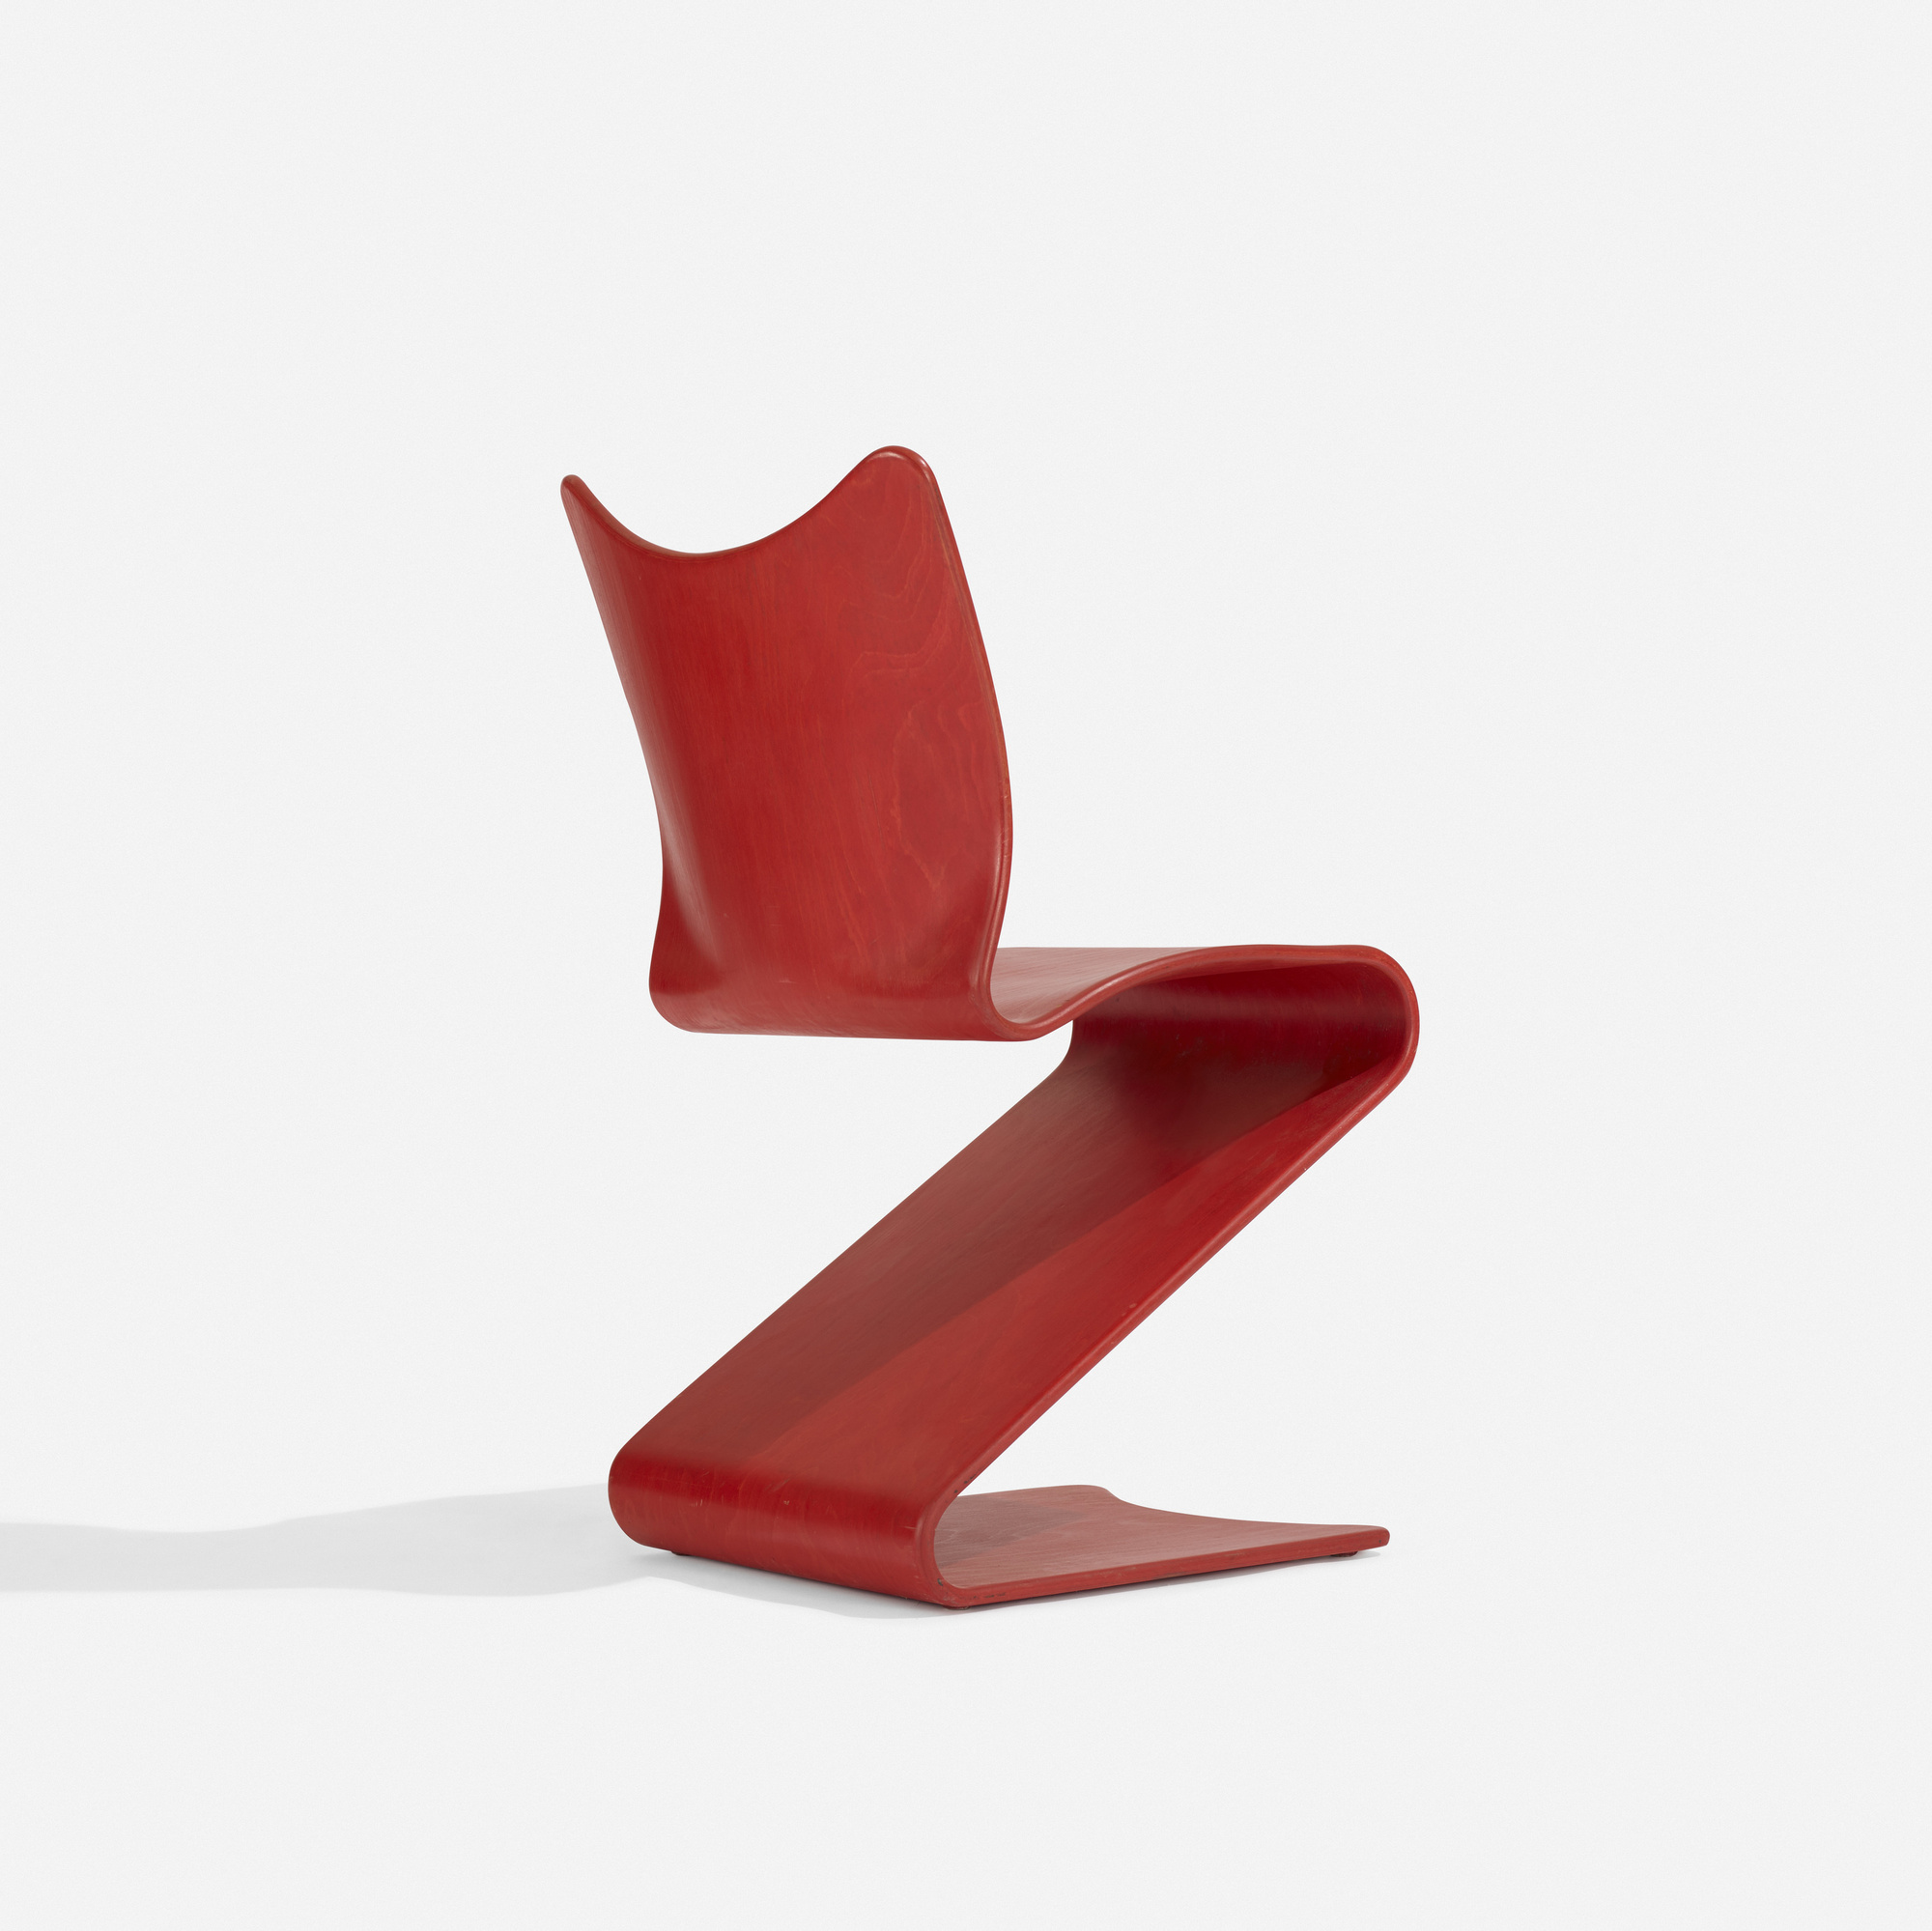 panton s chair potato chip eames 378 verner model 275 the boyd collection iii 1 of 3